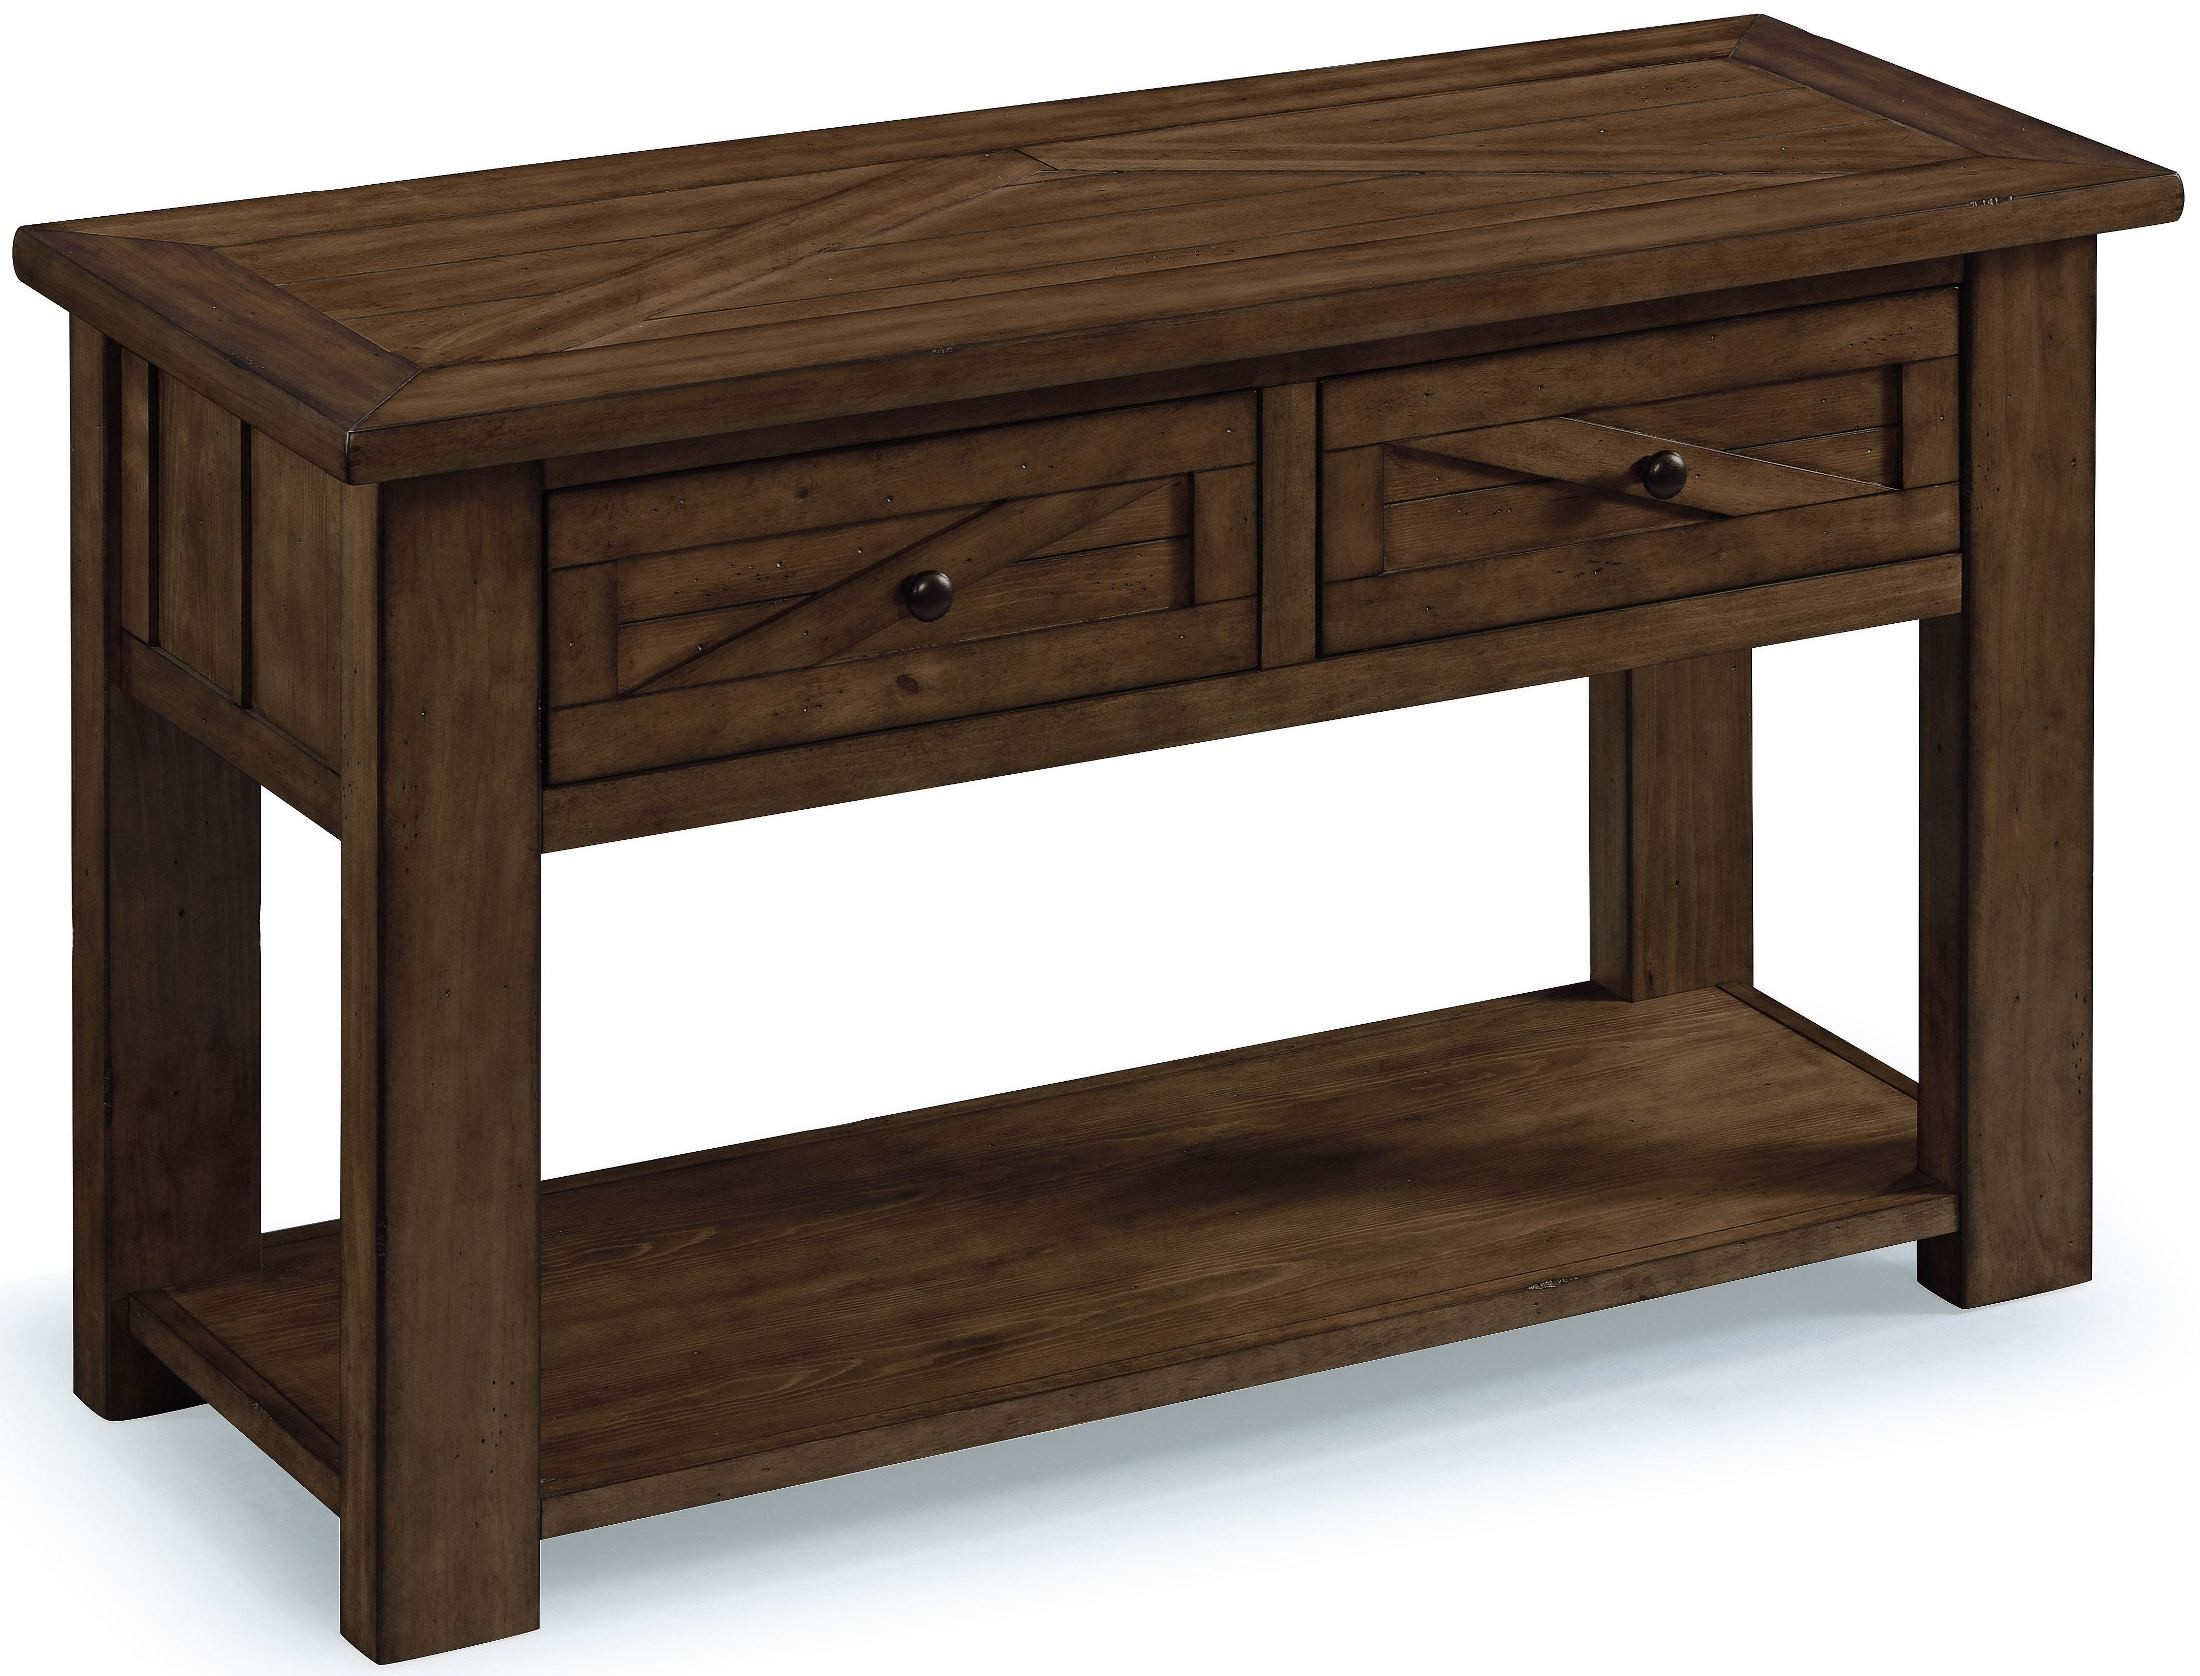 Fraser Rustic Pine Wood Rectangular Sofa Table T3779 73